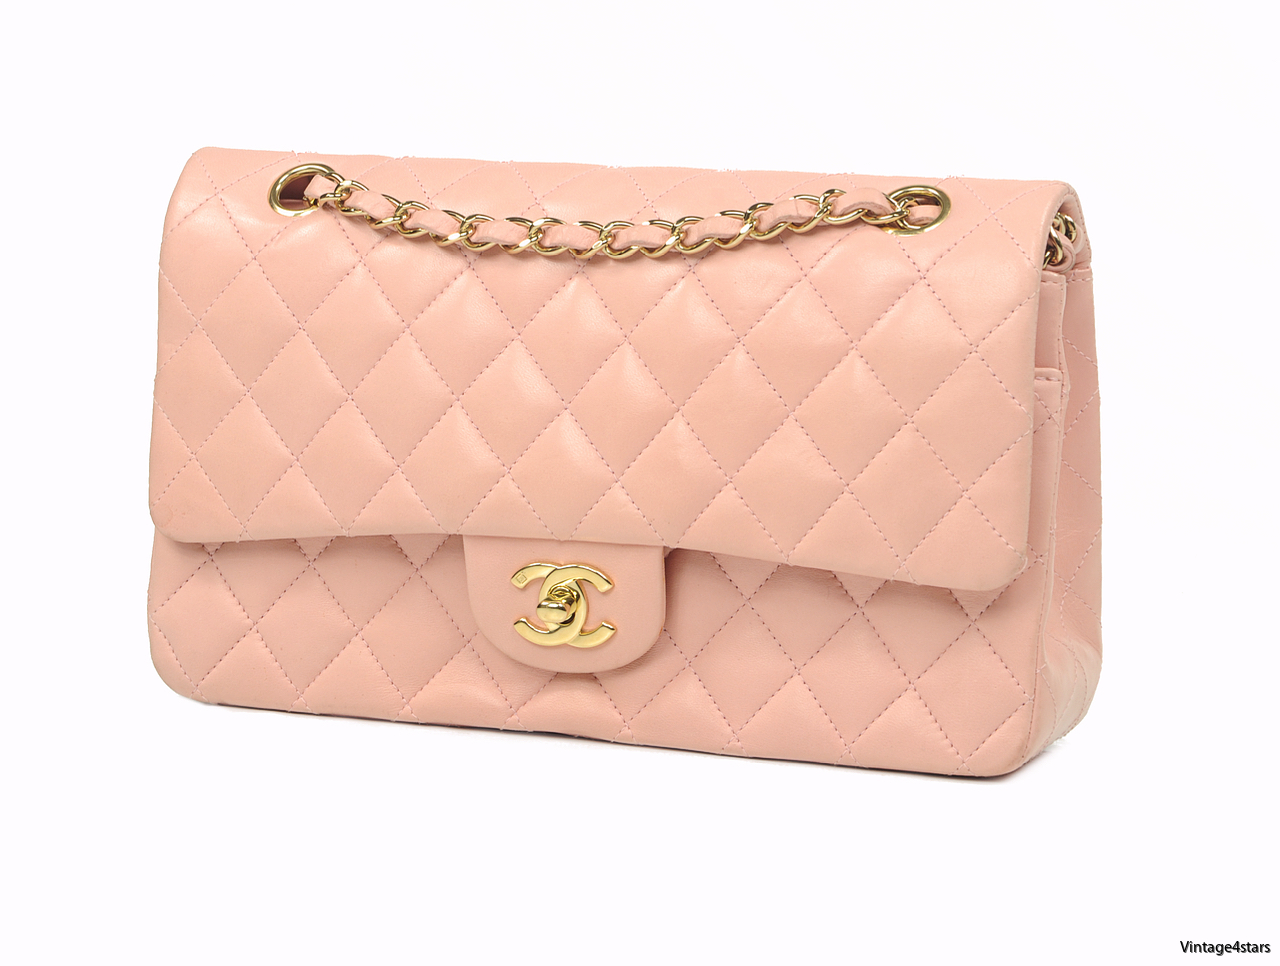 CHANEL DOUBLE FLAP PINK 3